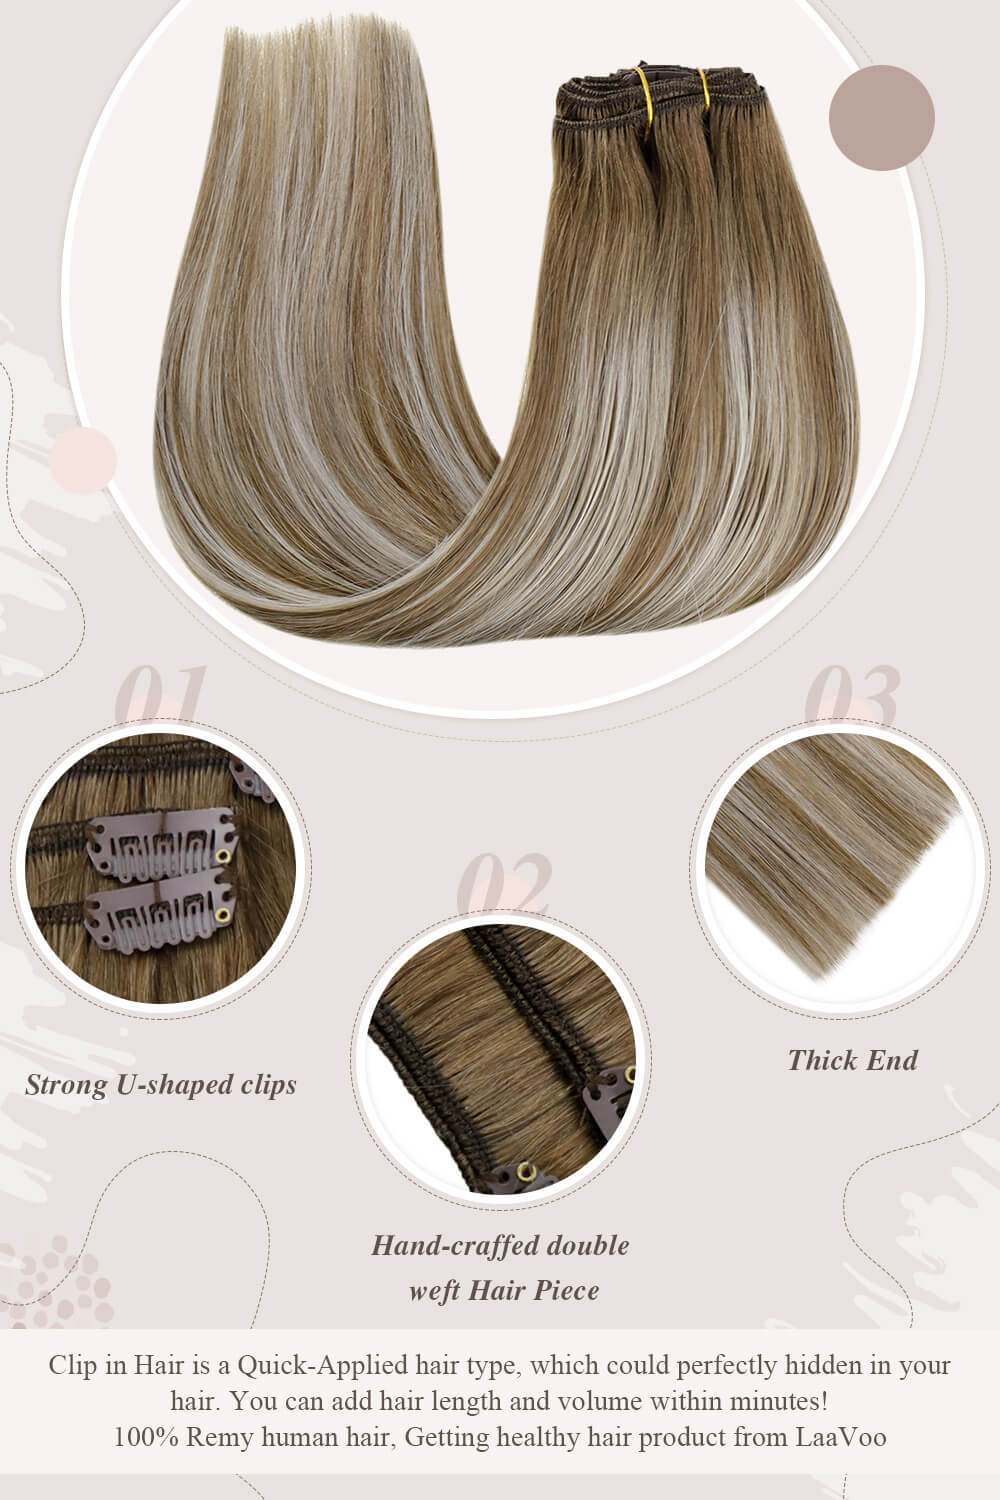 darkest brownstrong U shaped clips hand craffed double weft hair piece thick end clip in hair perfectly hidden in your hair you can add hair length and volume within minutes Remy human hair getting healthy hair product